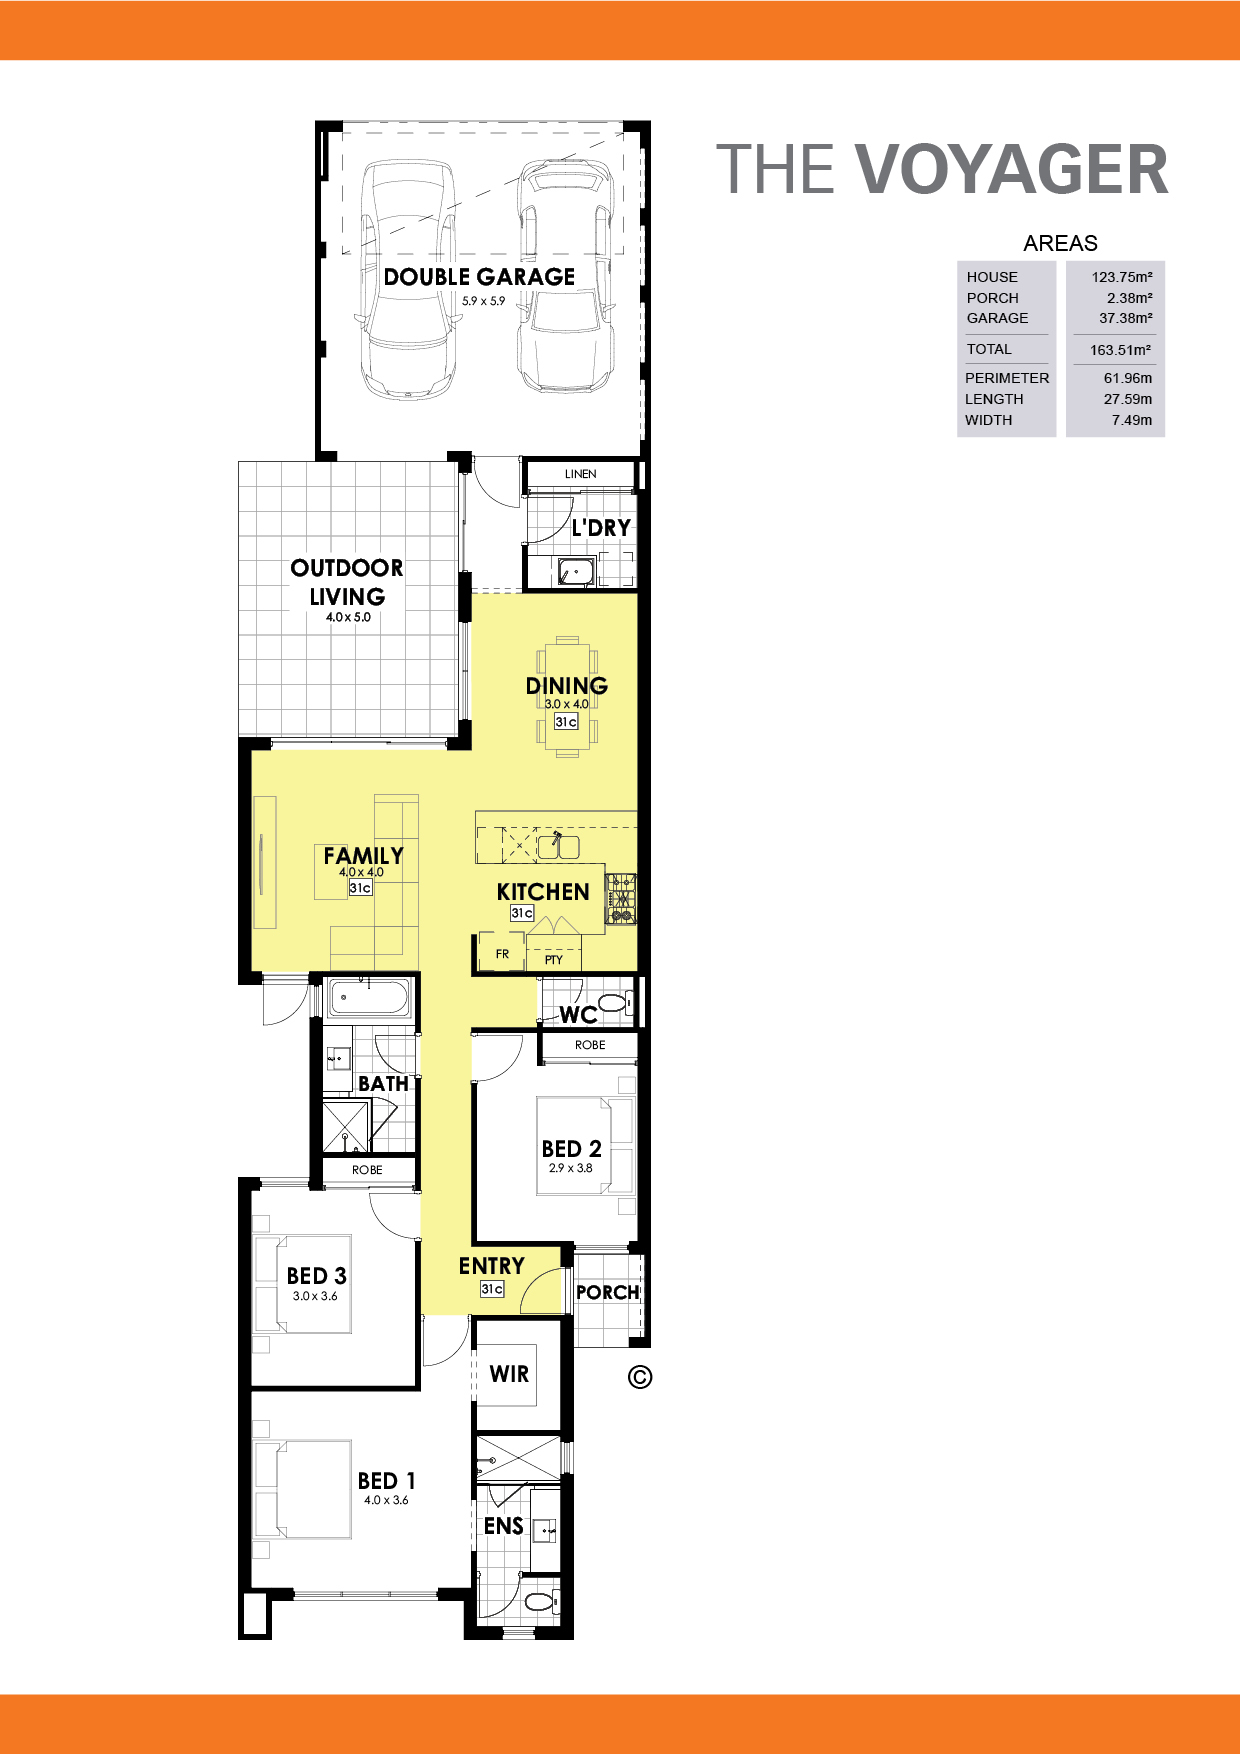 The Voyager Floorplan